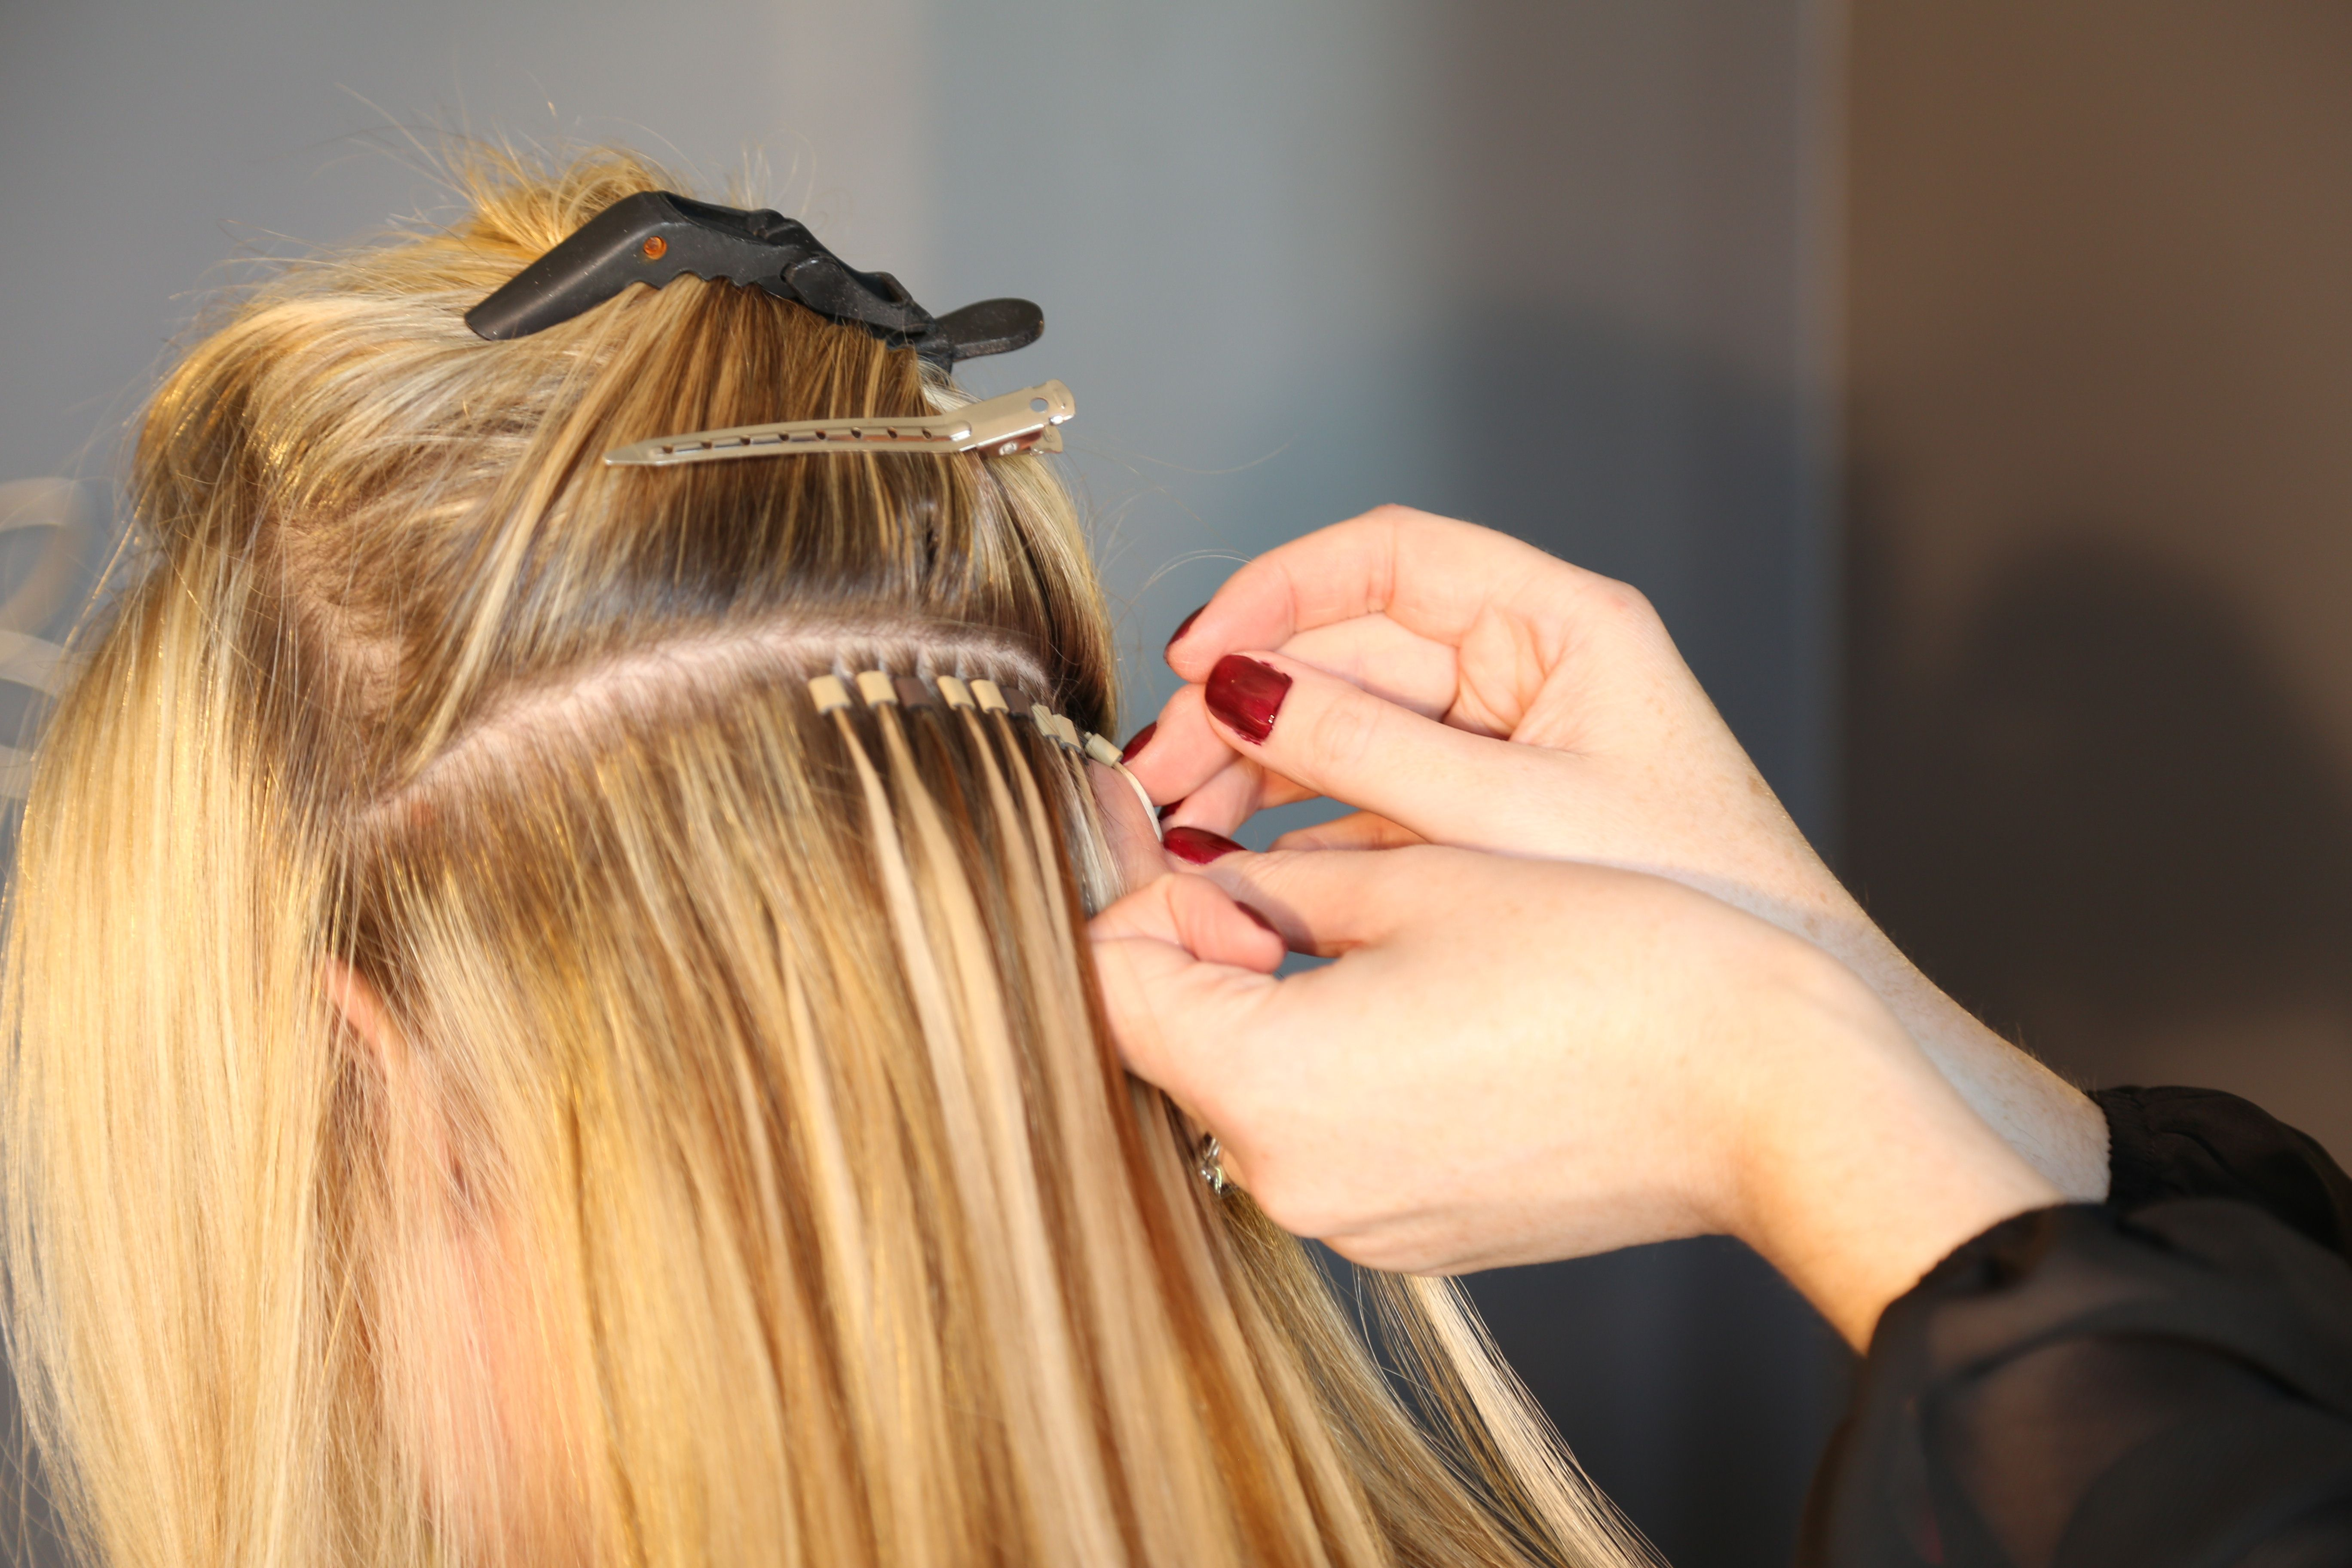 I Hair Extensions With This Method The Hair Is Reusable The